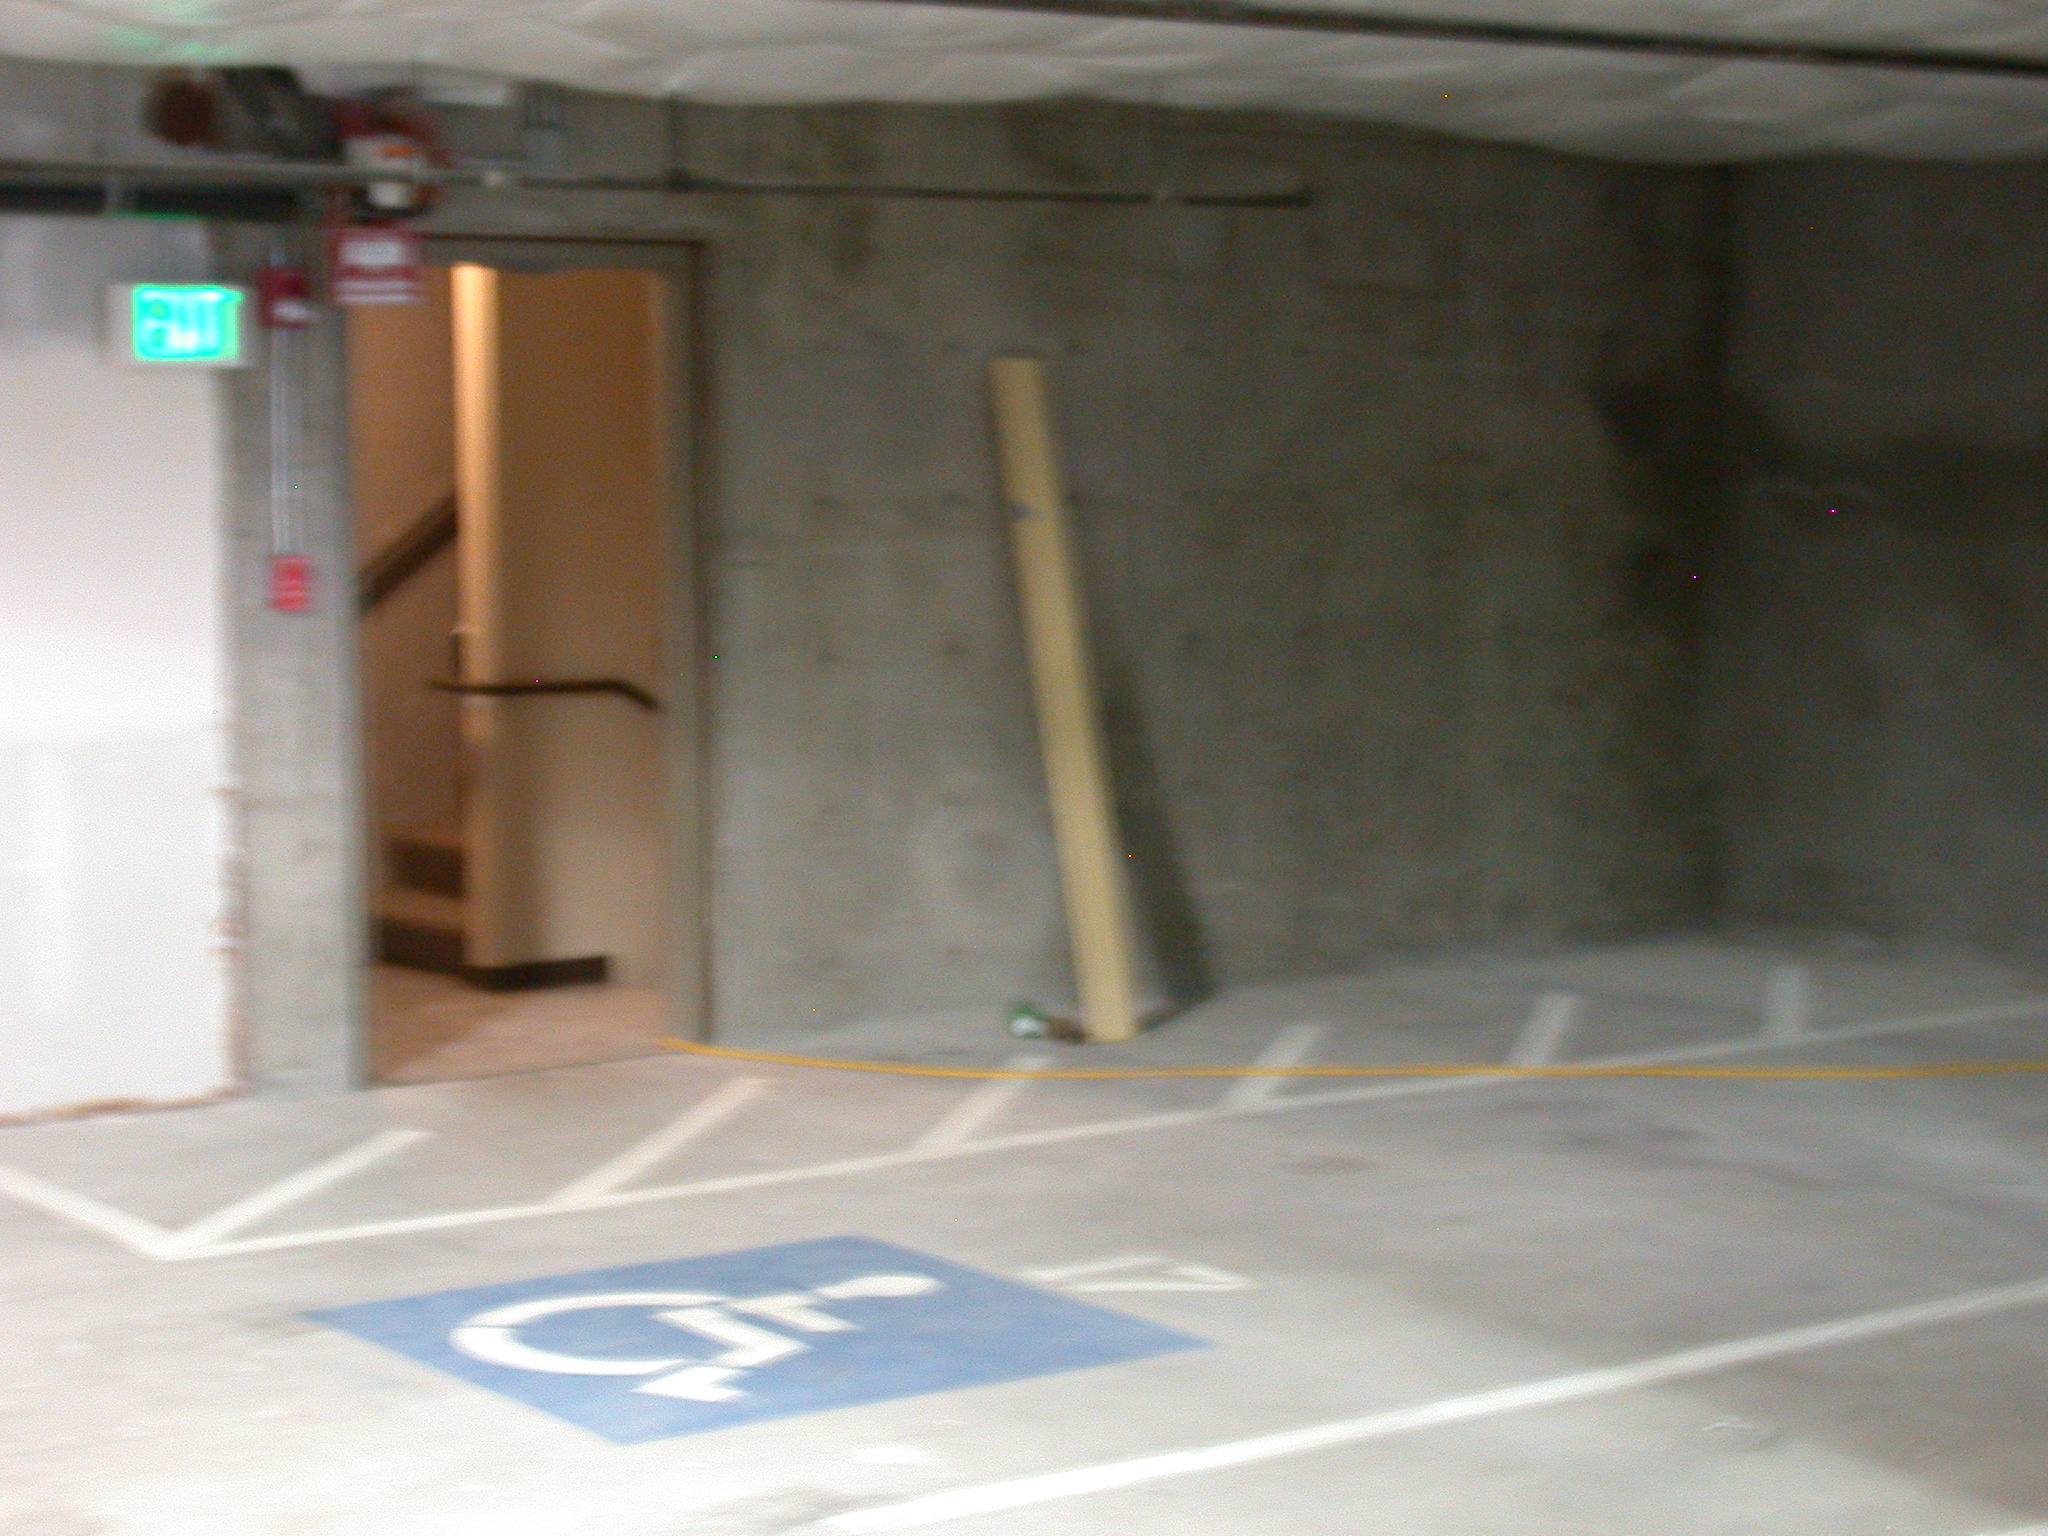 Similar Parking Spot One Floor Up From Handicapped Spot Assigned to Moms Condominium